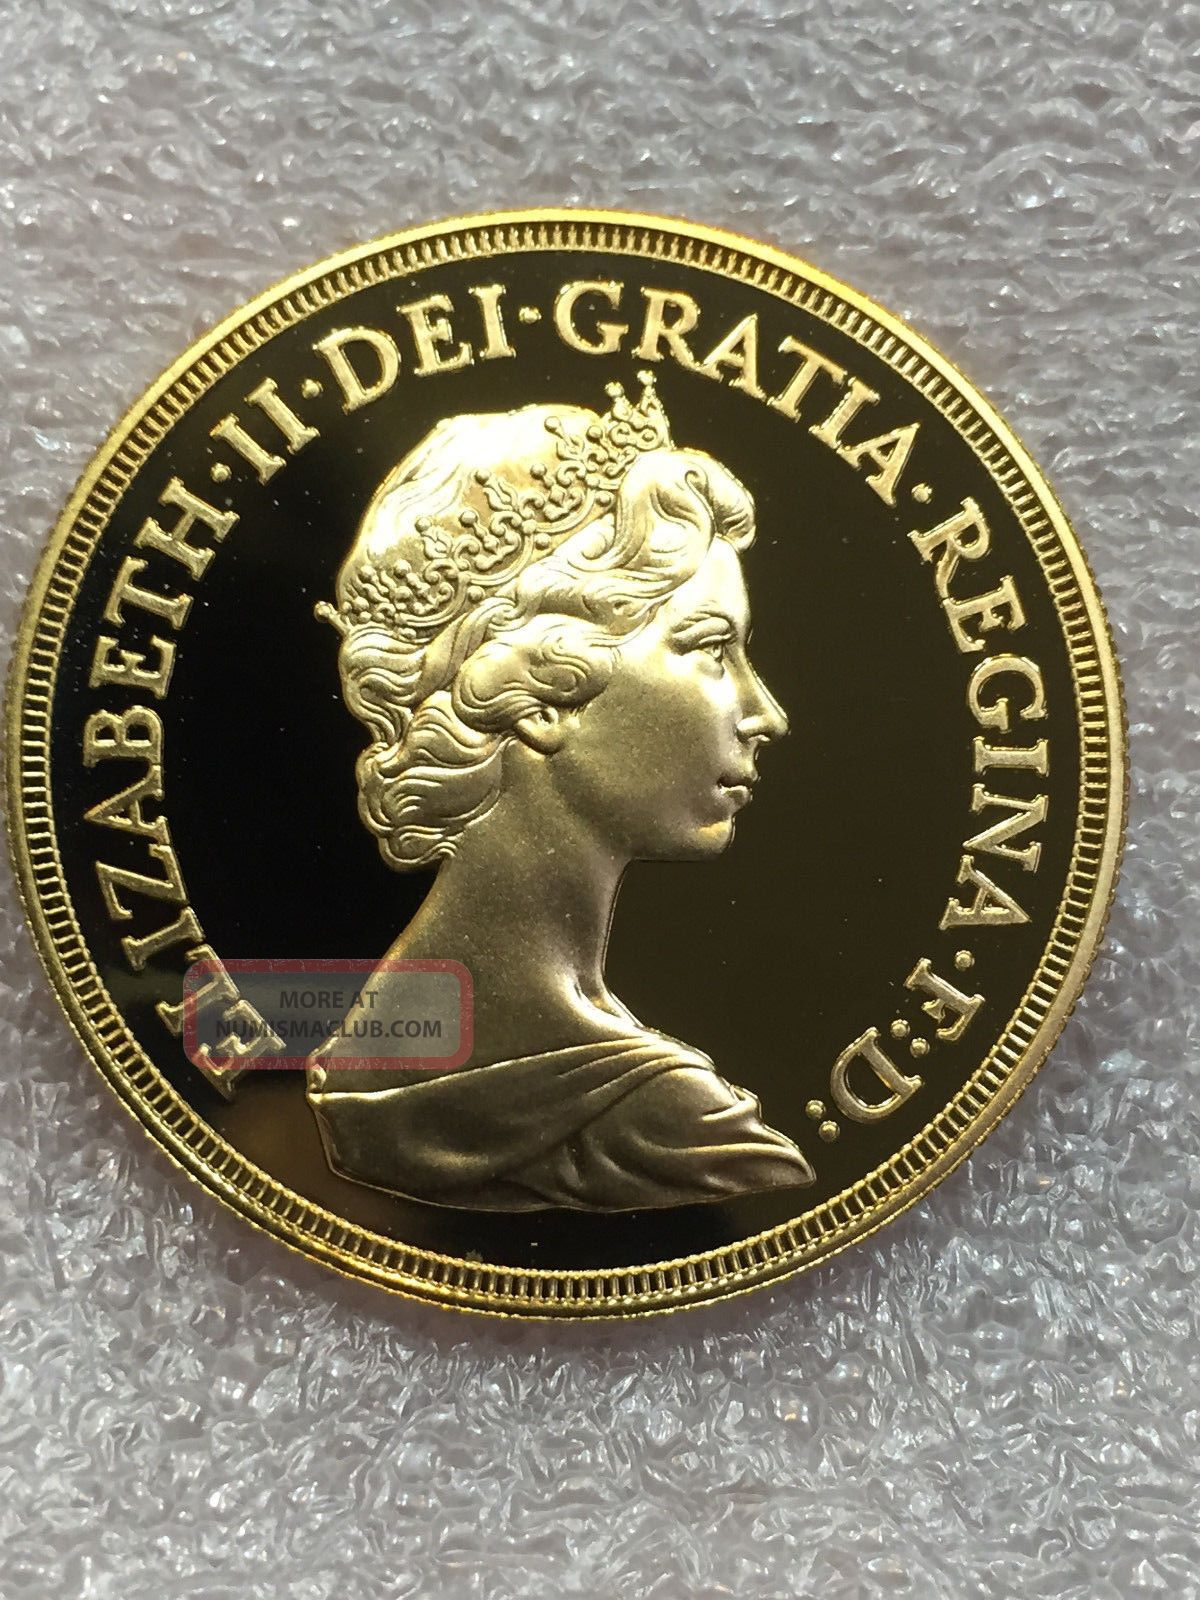 1984 United Kingdom Proof Five 5 Pound Sovereign Gold Coin Lstg 5